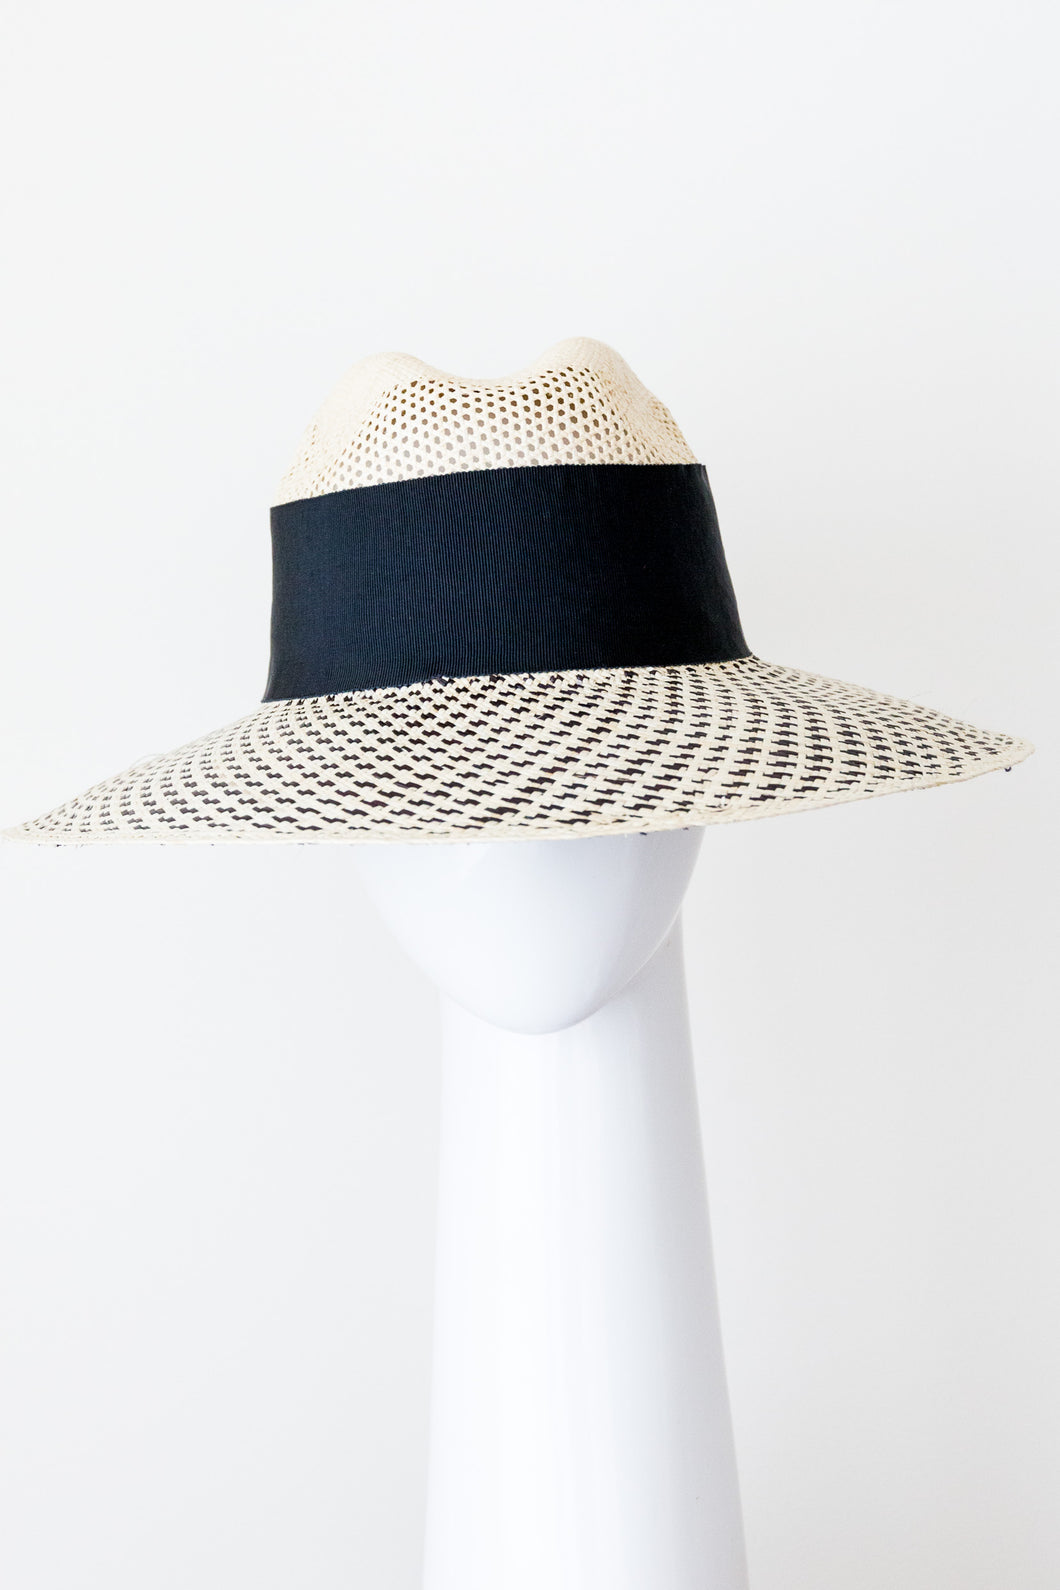 Cream and black panama sunhat with a swirlpattern